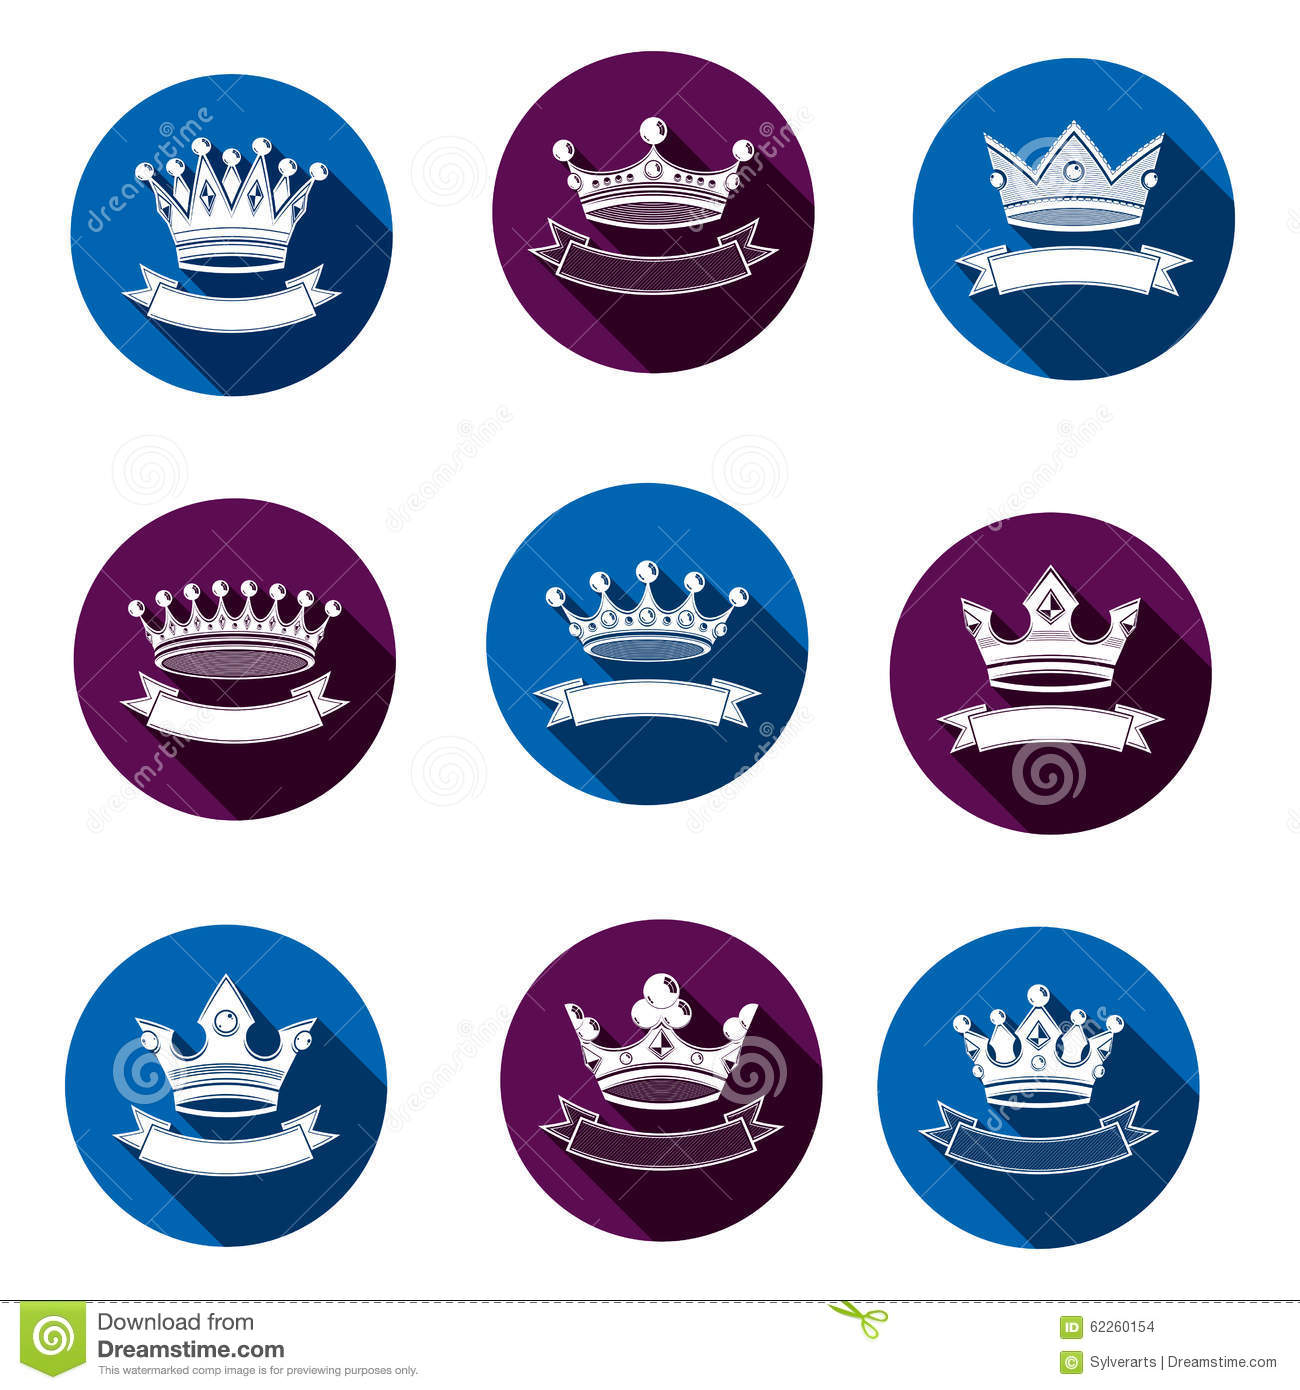 Majestic Crowns Emblems Set Heraldic Coat Of Arms